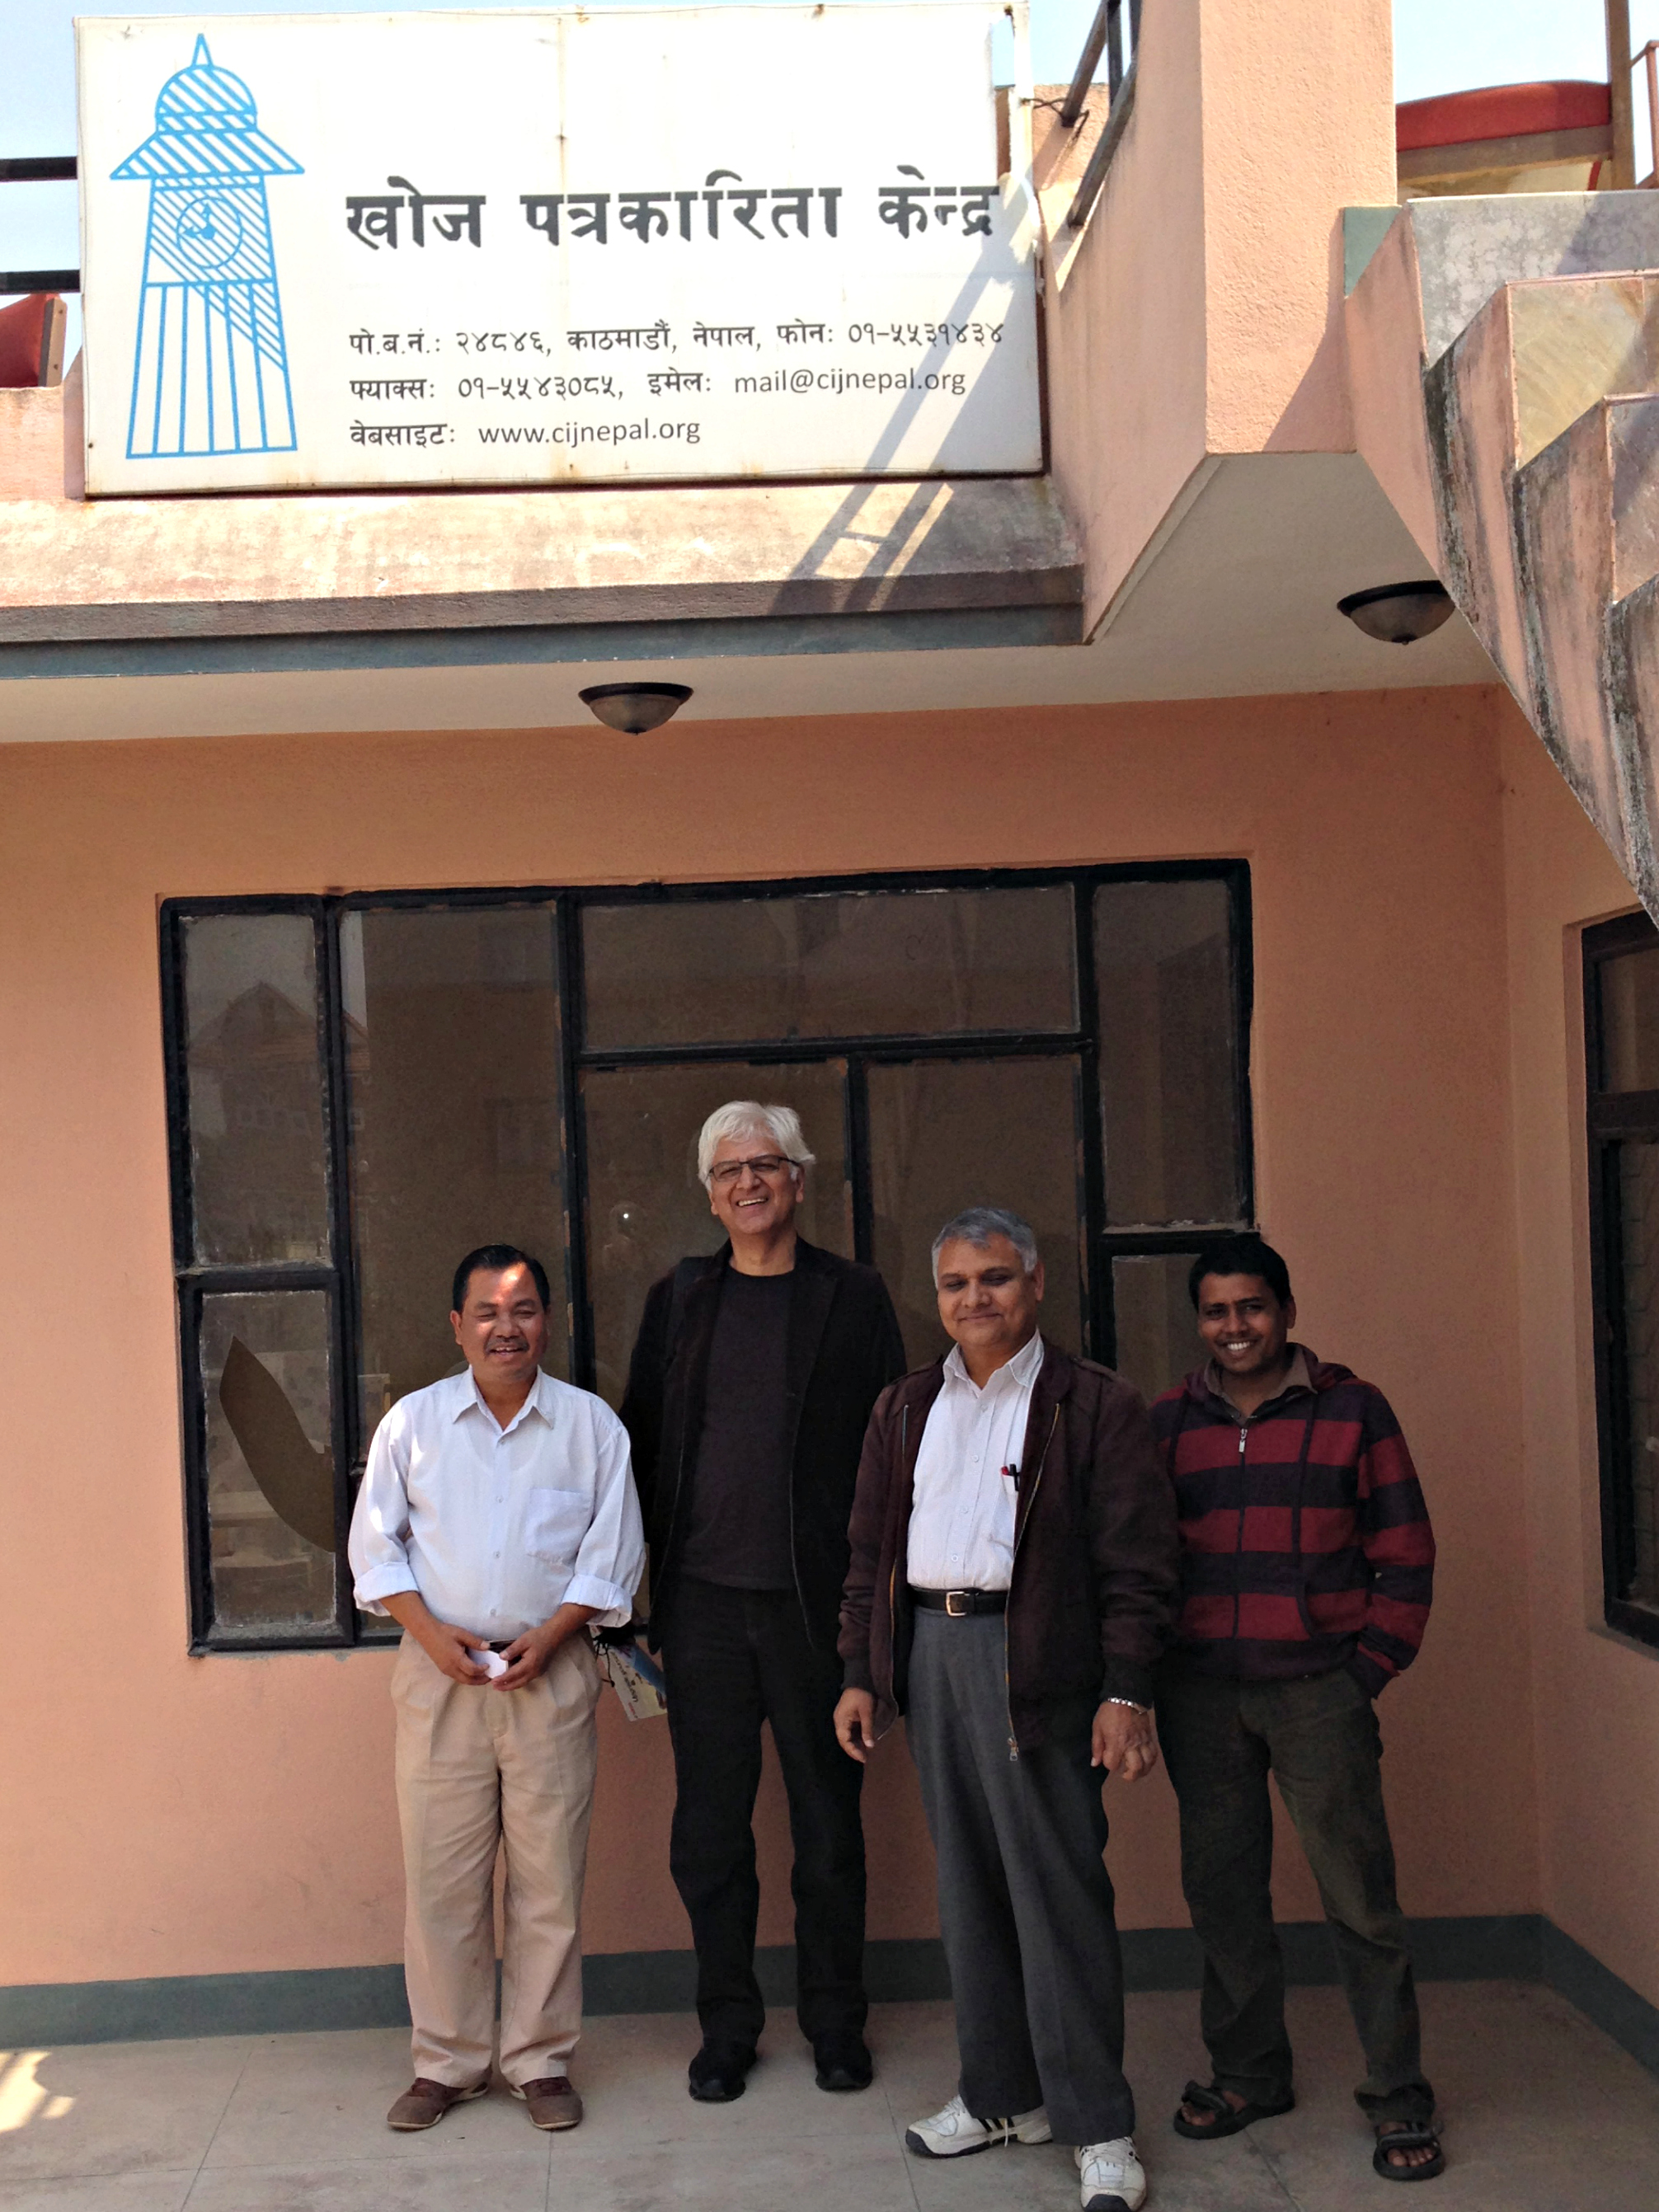 Investigative Pioneers: Some of the gutsy staff and board at the Nepal Centre for Investigative Journalism in Kathmandu -- Hasta Gurung, Kunda Dixit, Rajendra Dahal, Navin Jha.